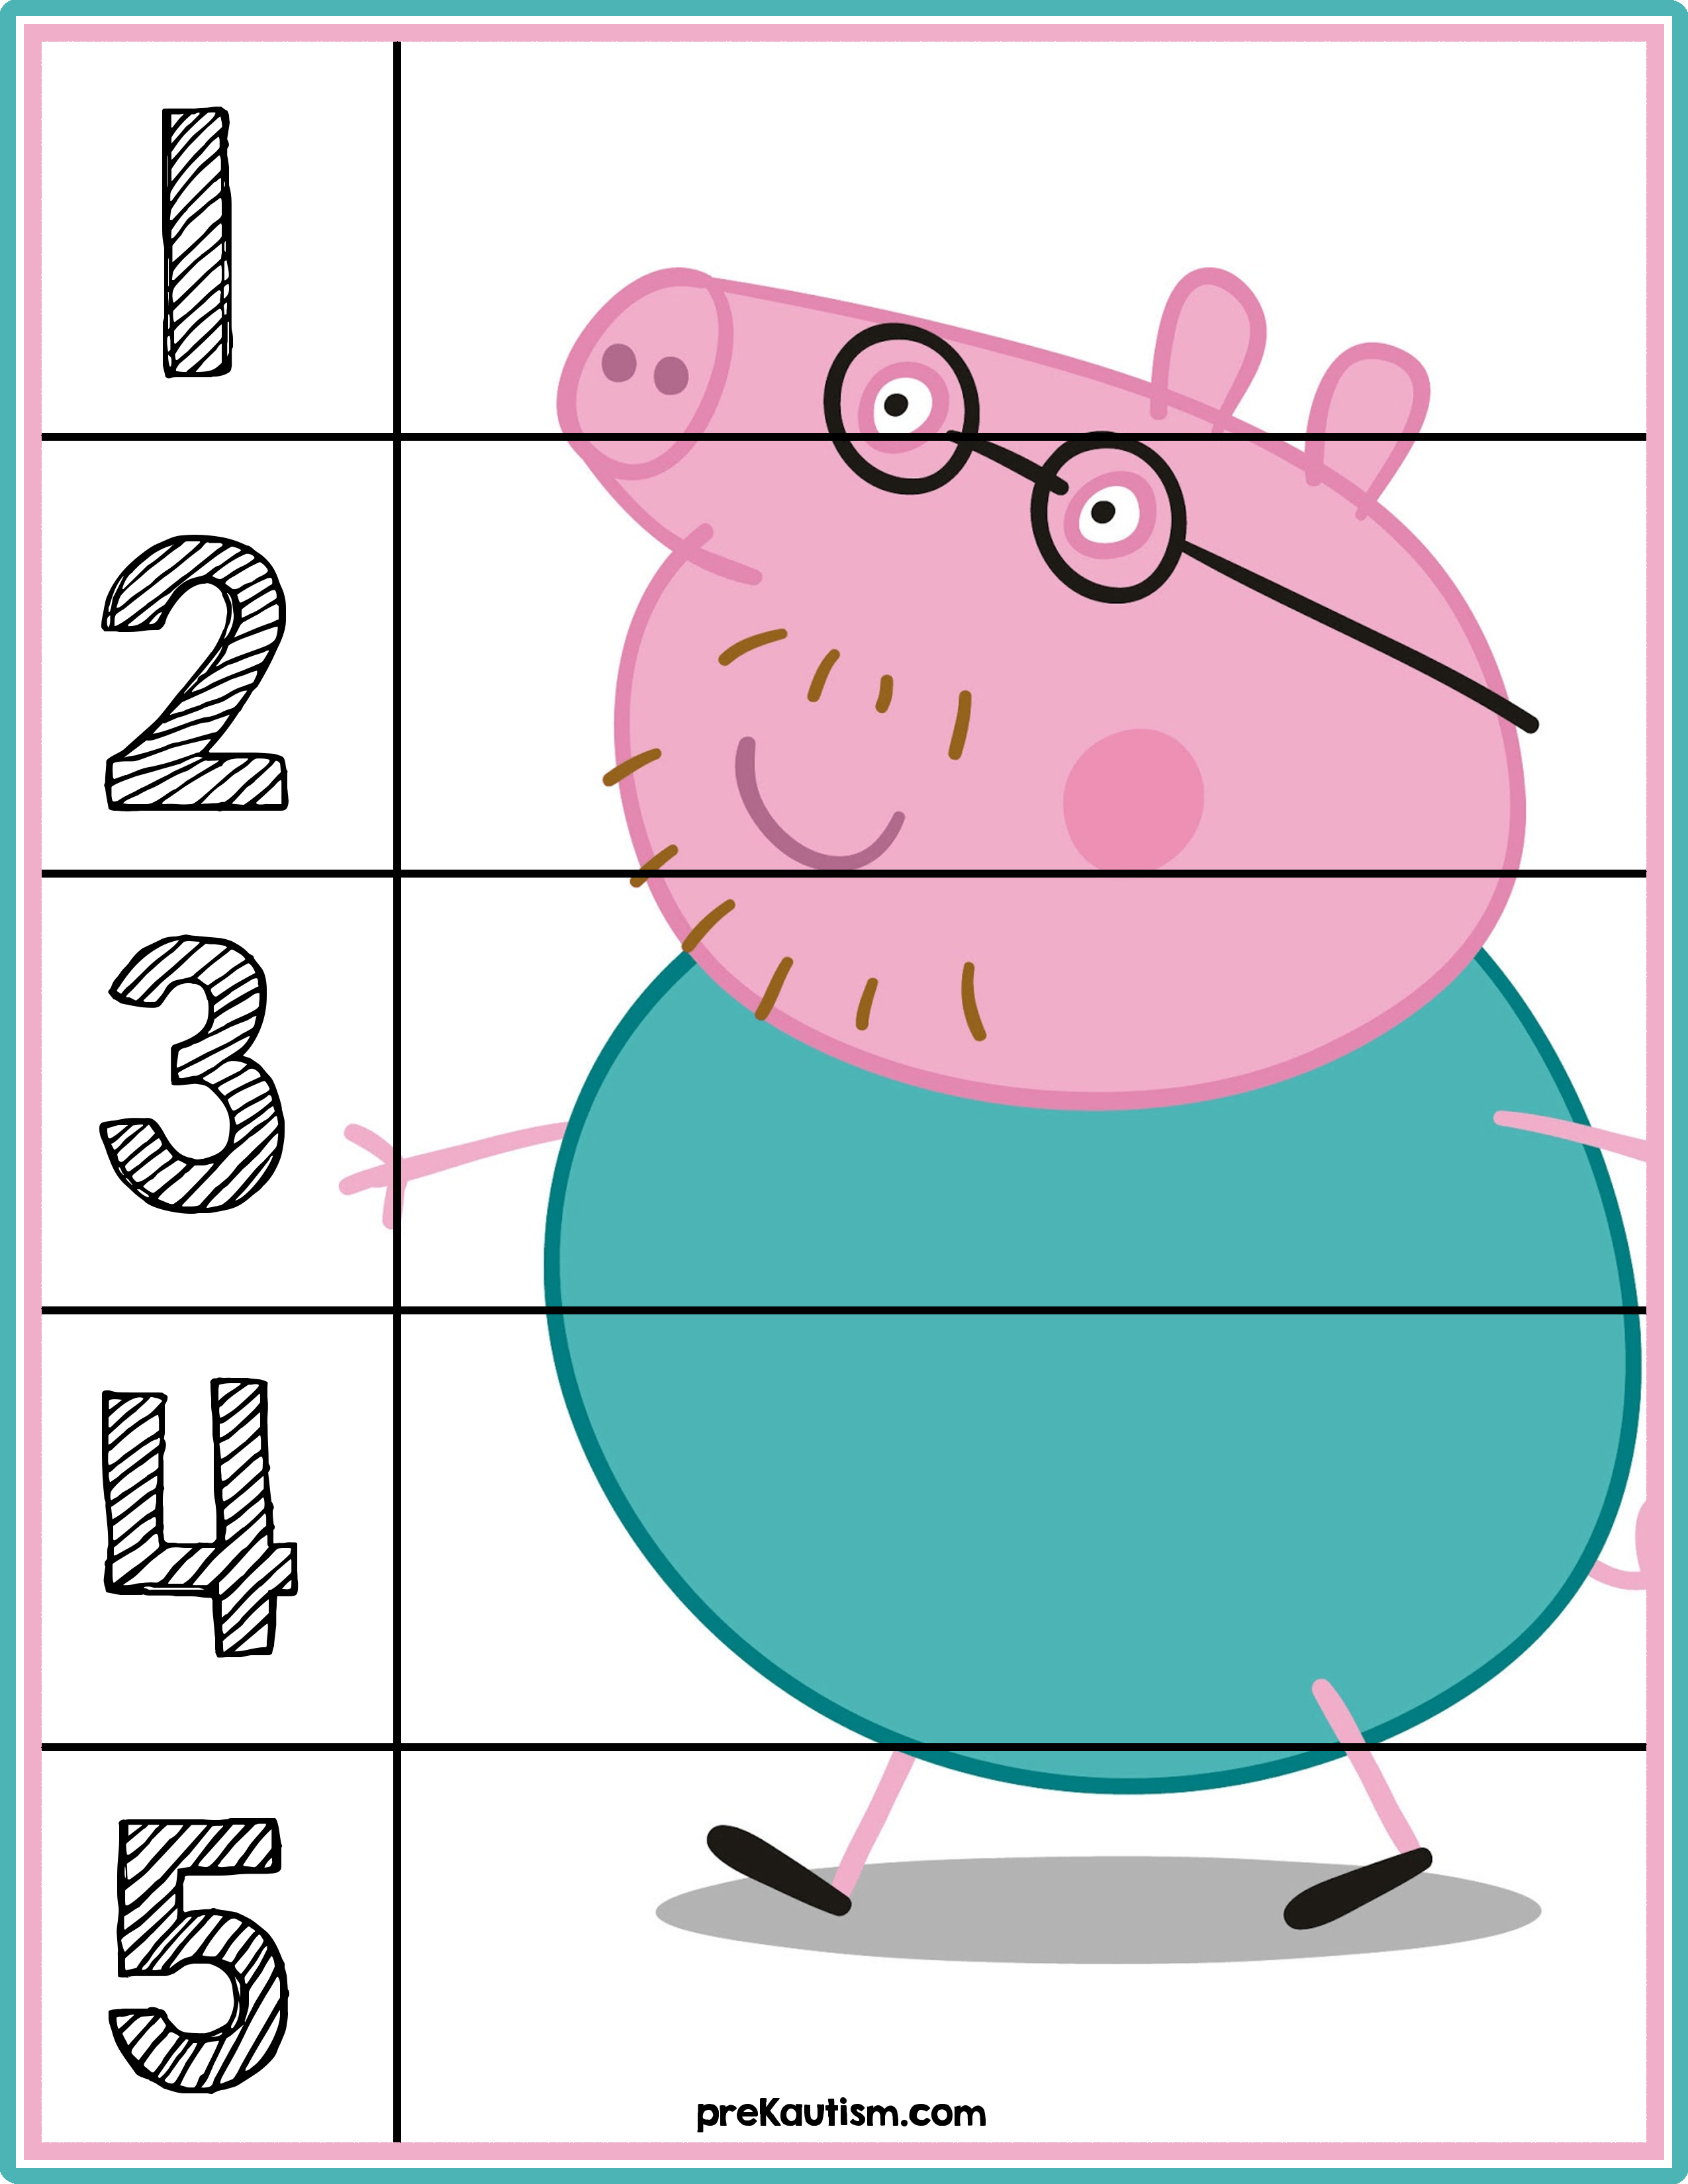 Peppa Pig Number Puzzles #'s 1-5   Autism Activities For Ages 3-5 - Printable Puzzles For Toddlers